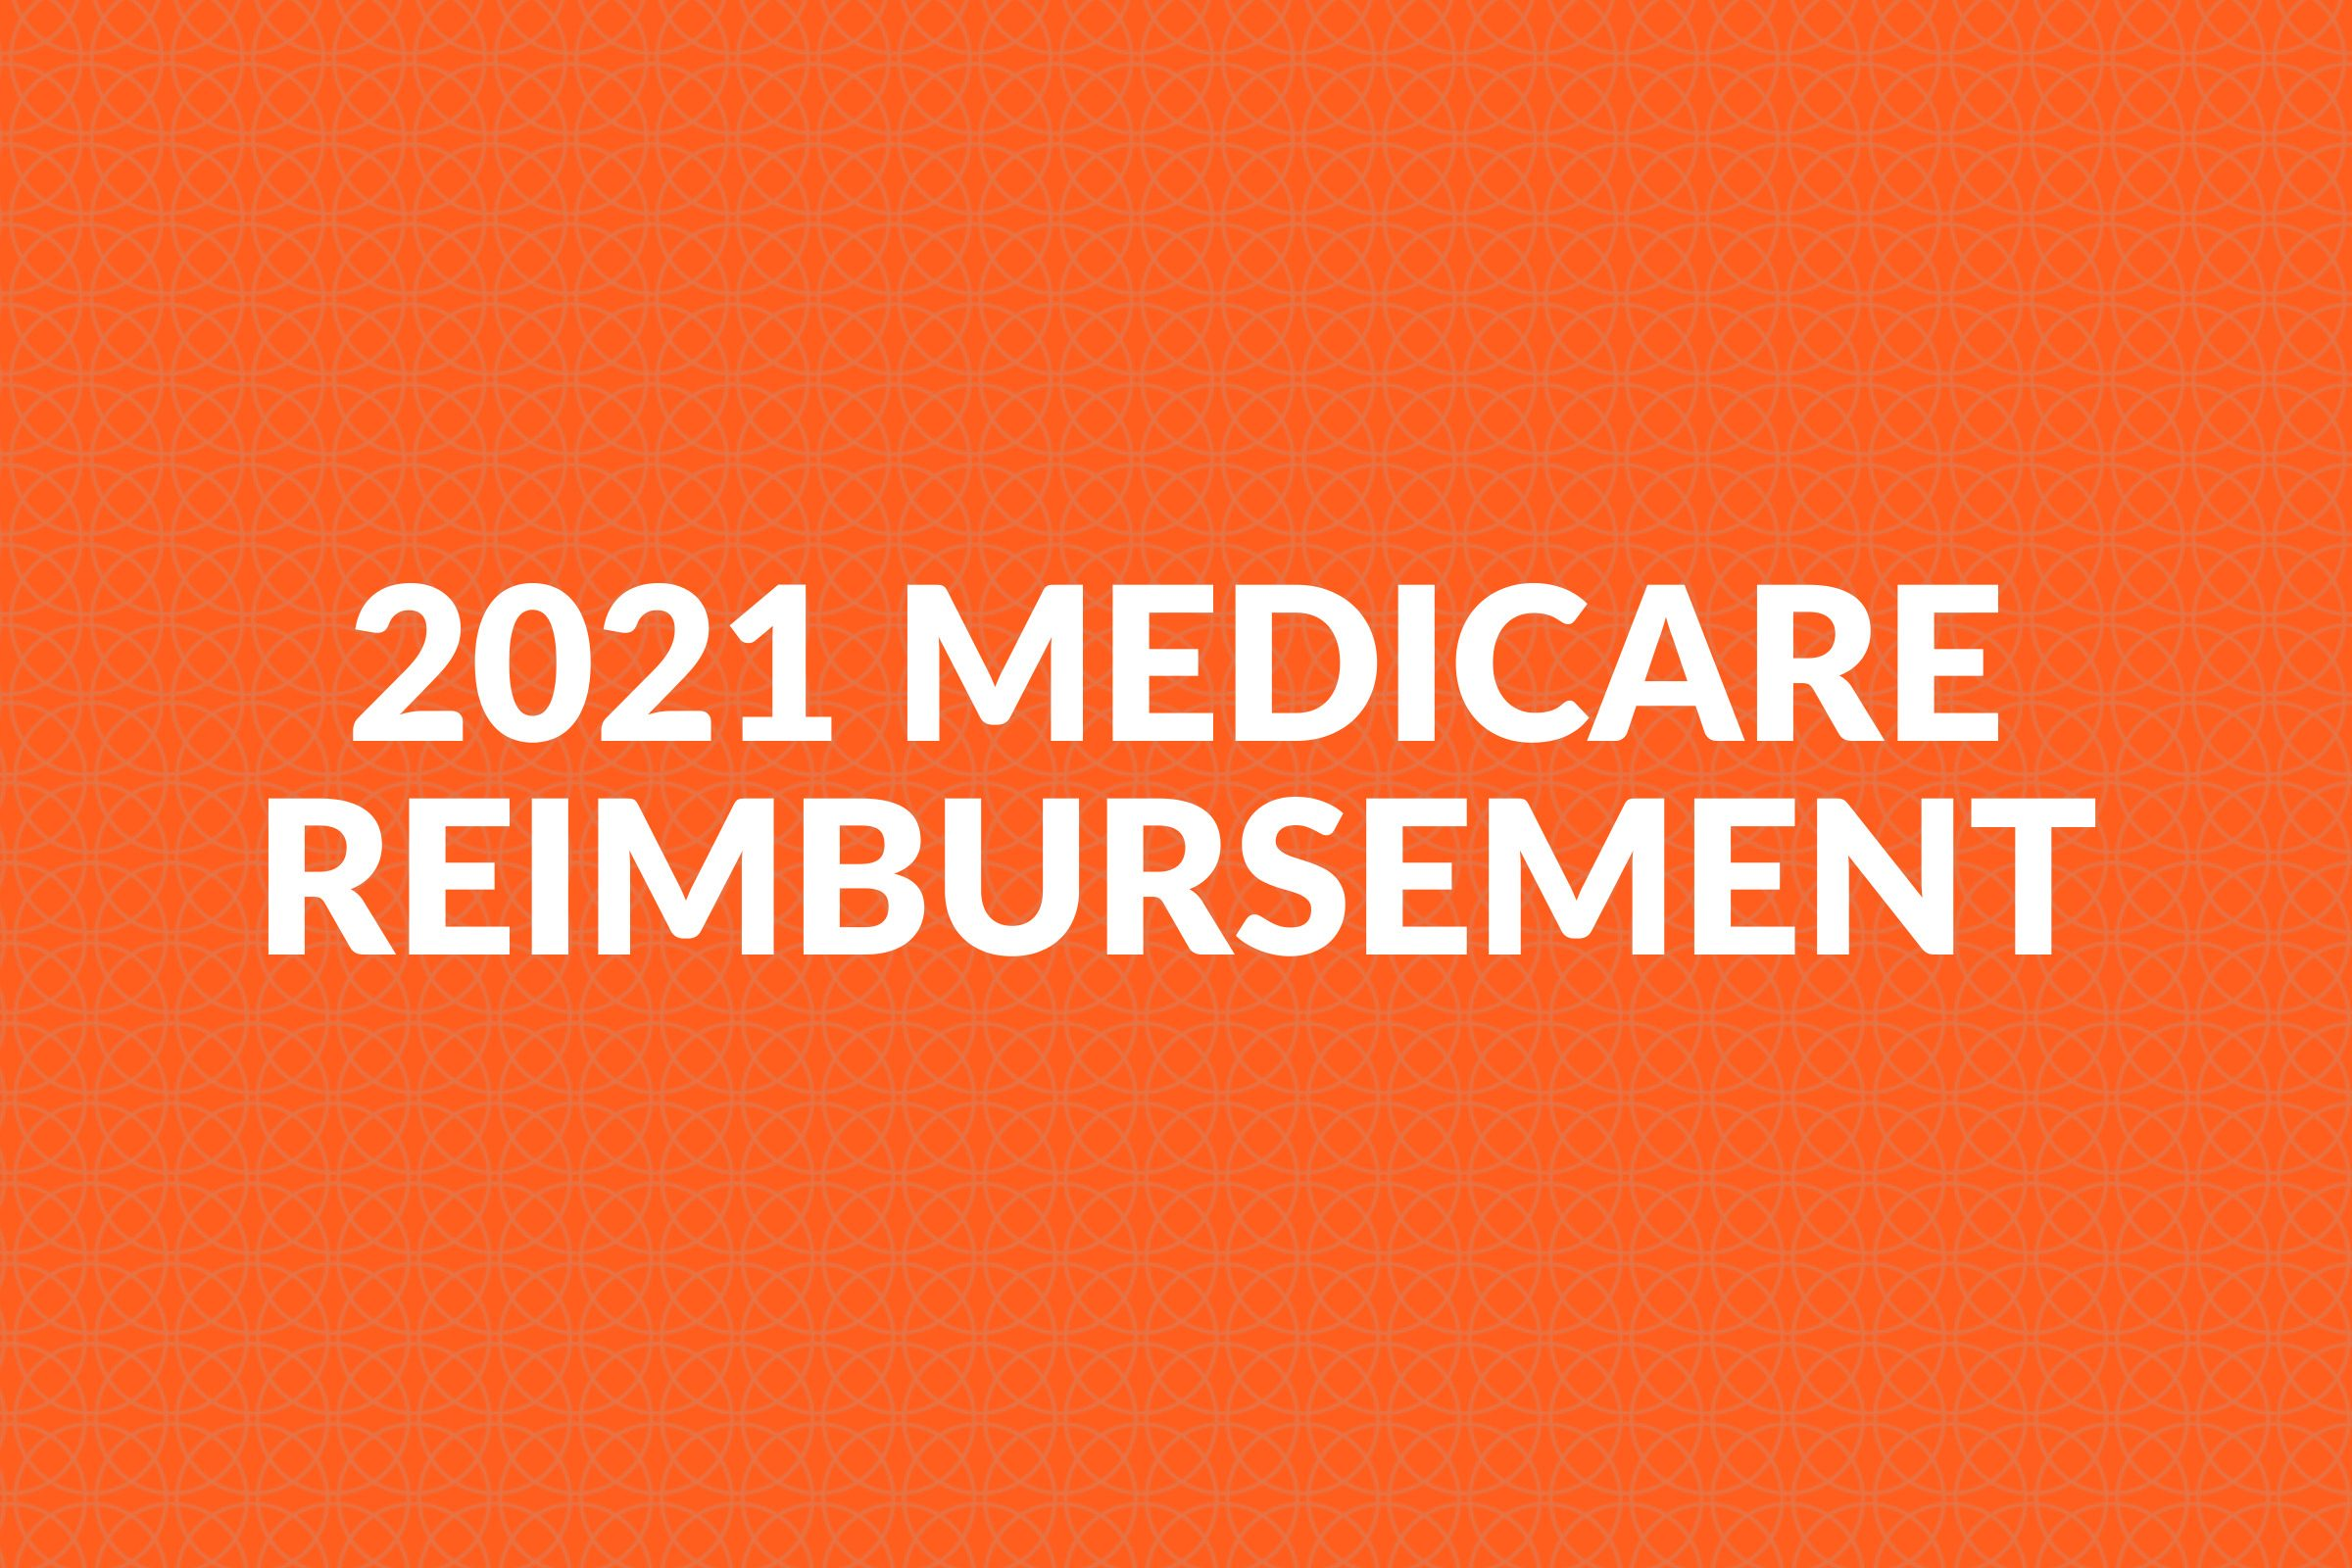 2021 MEDICARE REIMBURSEMENT